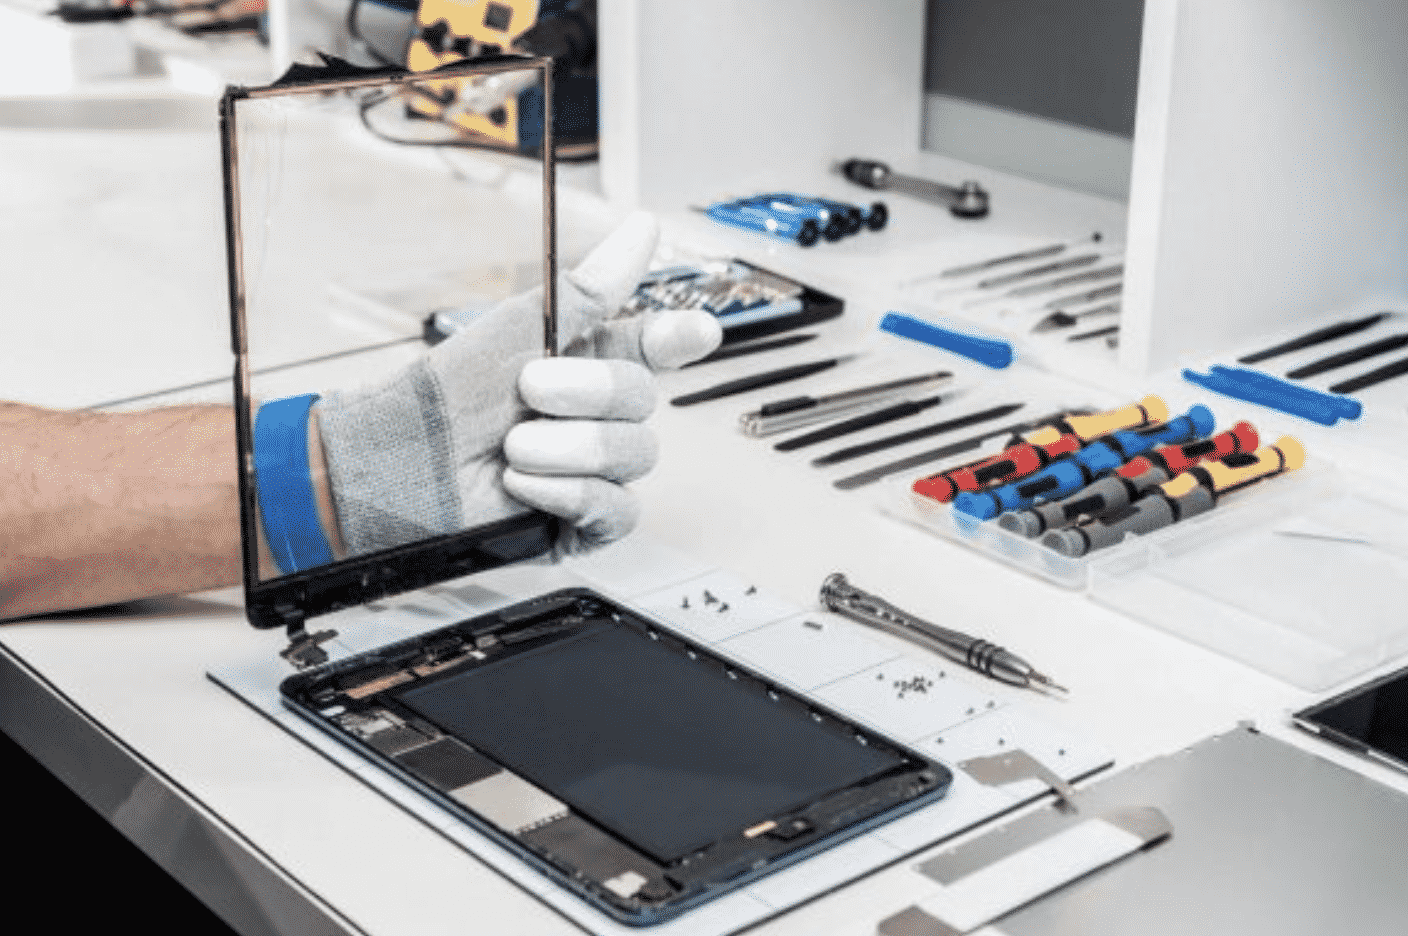 Samsung Galaxy Phone Repairs Australia